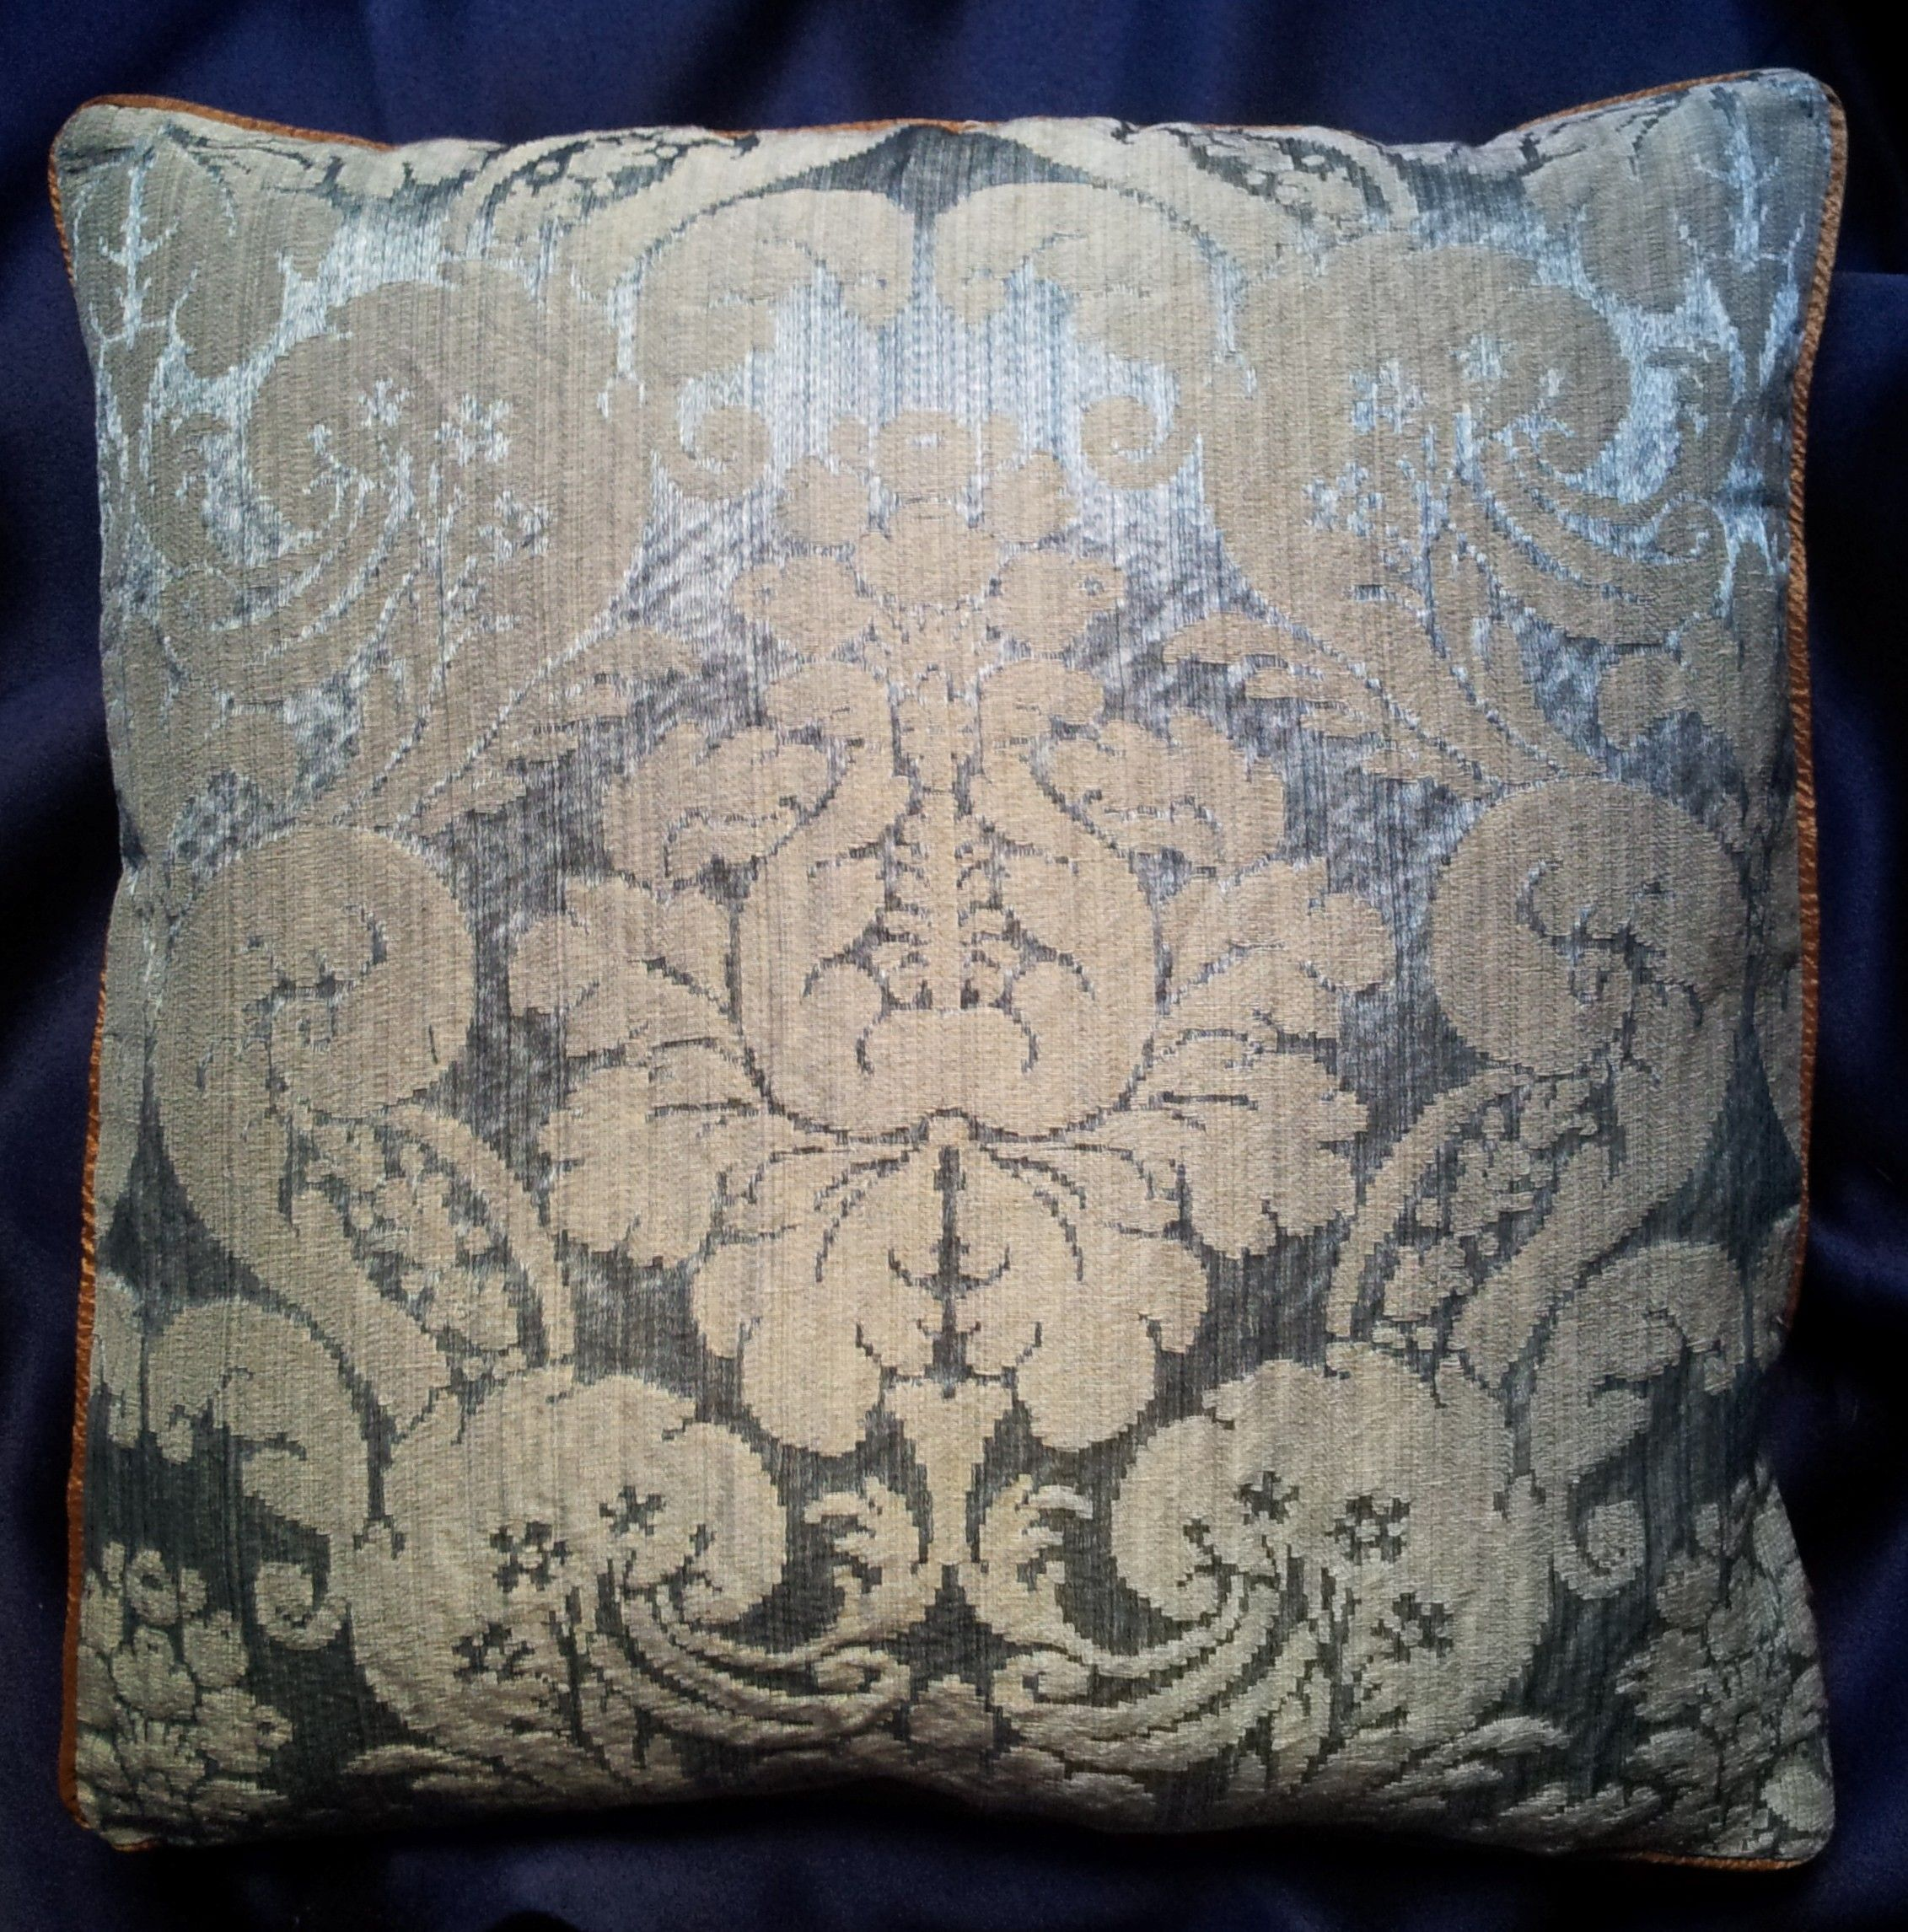 Rubelli Ruzante Light Blue Silk Damask Fabric Throw Pillow Cushion